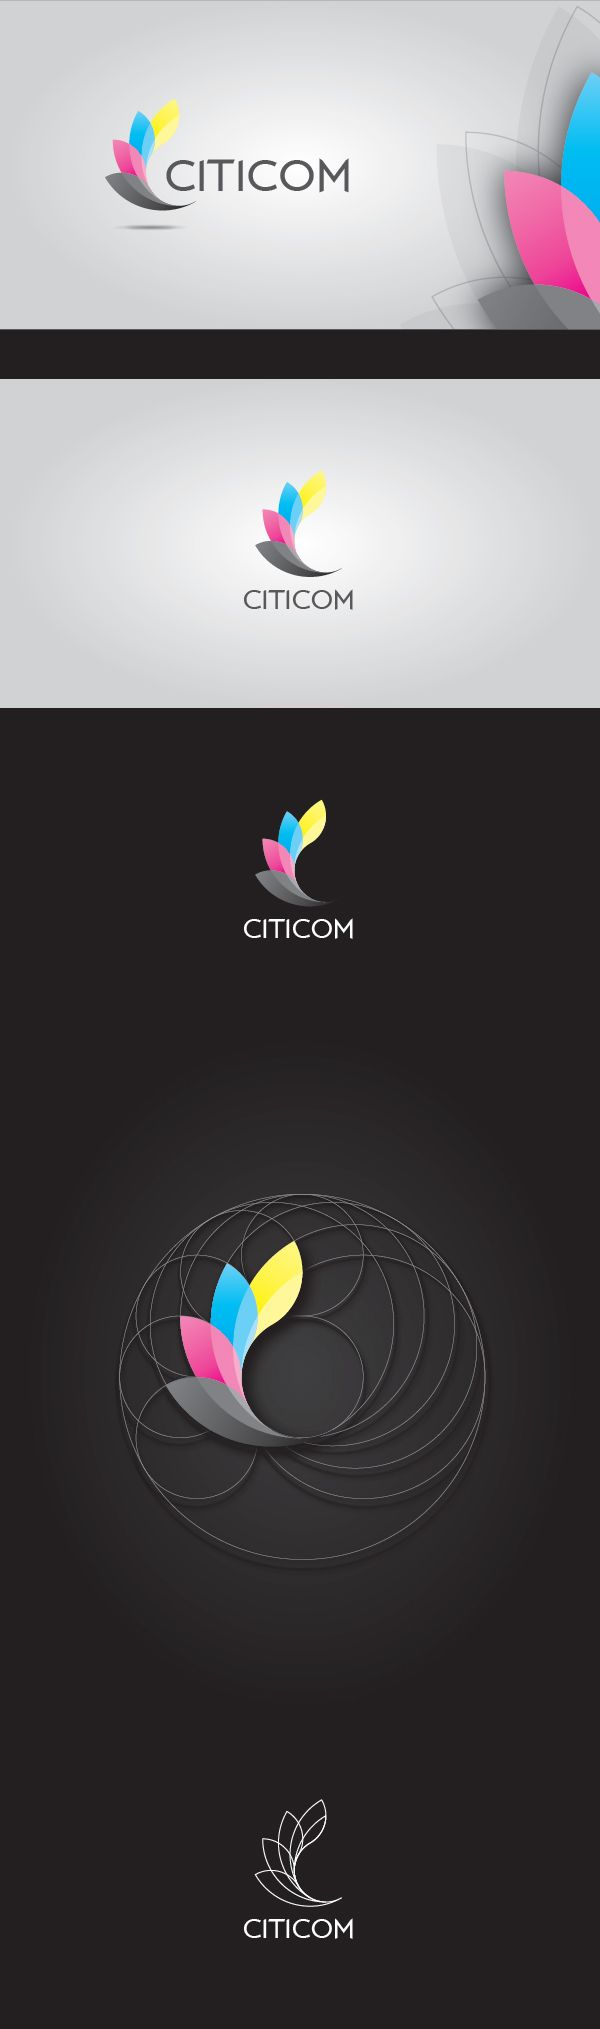 CITICOM corporate identity concept. Inspired by CMYK colors, flying papers and…